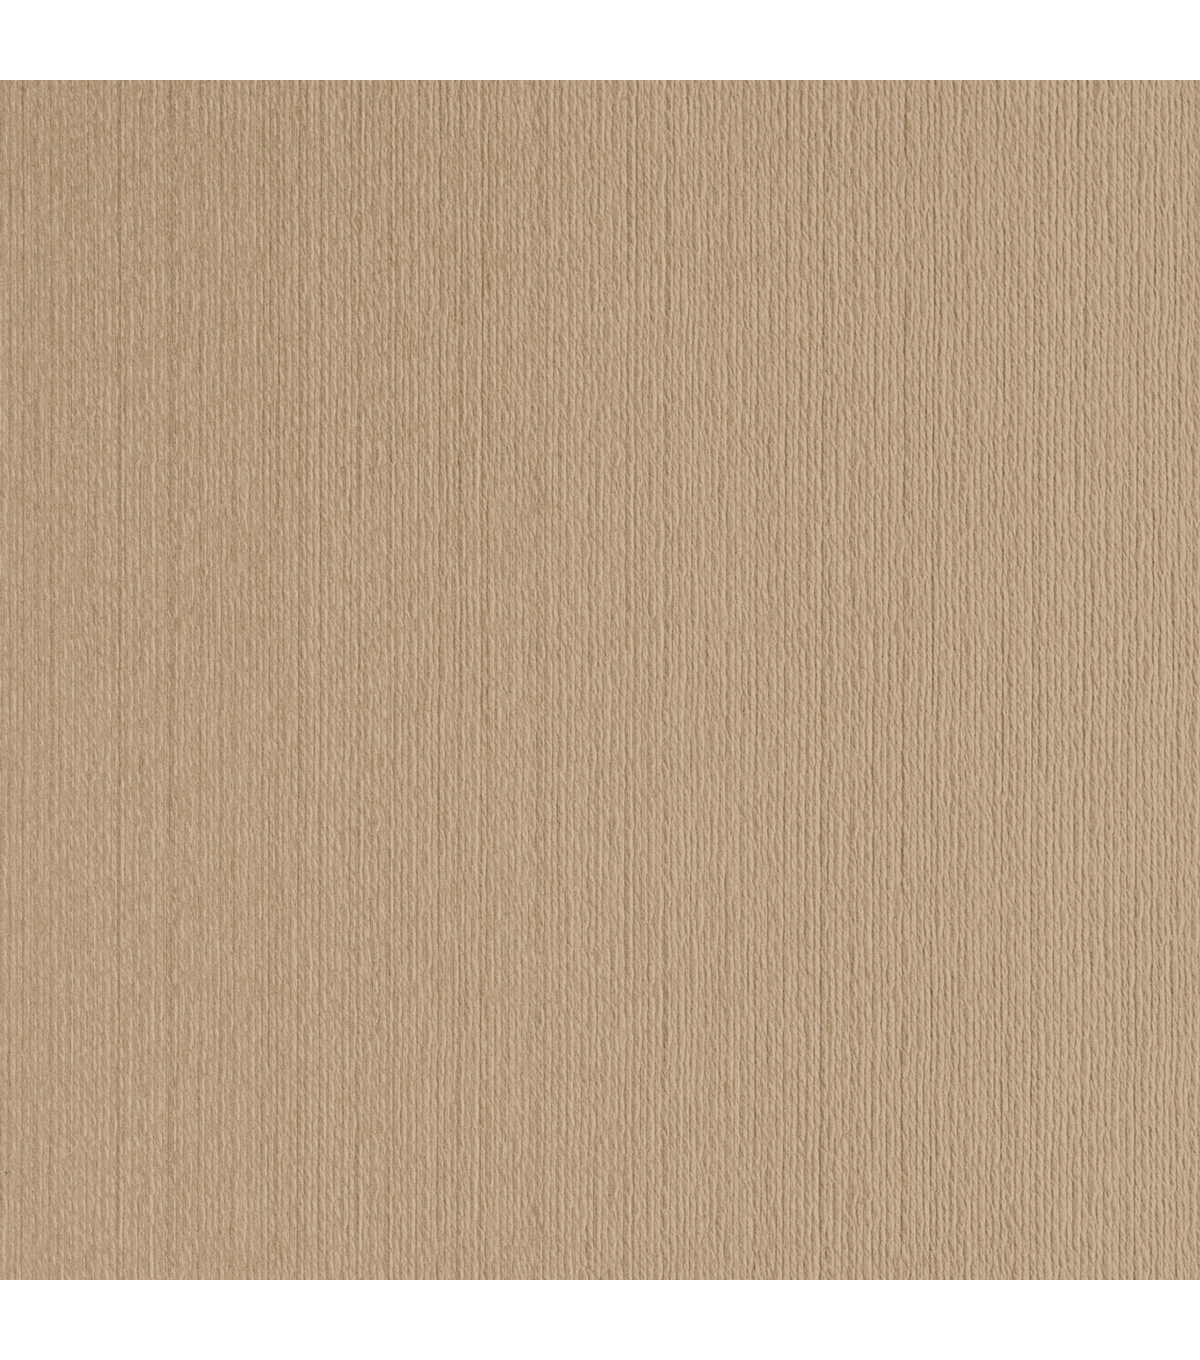 Dampierre Light Brown Stripe Texture Wallpaper